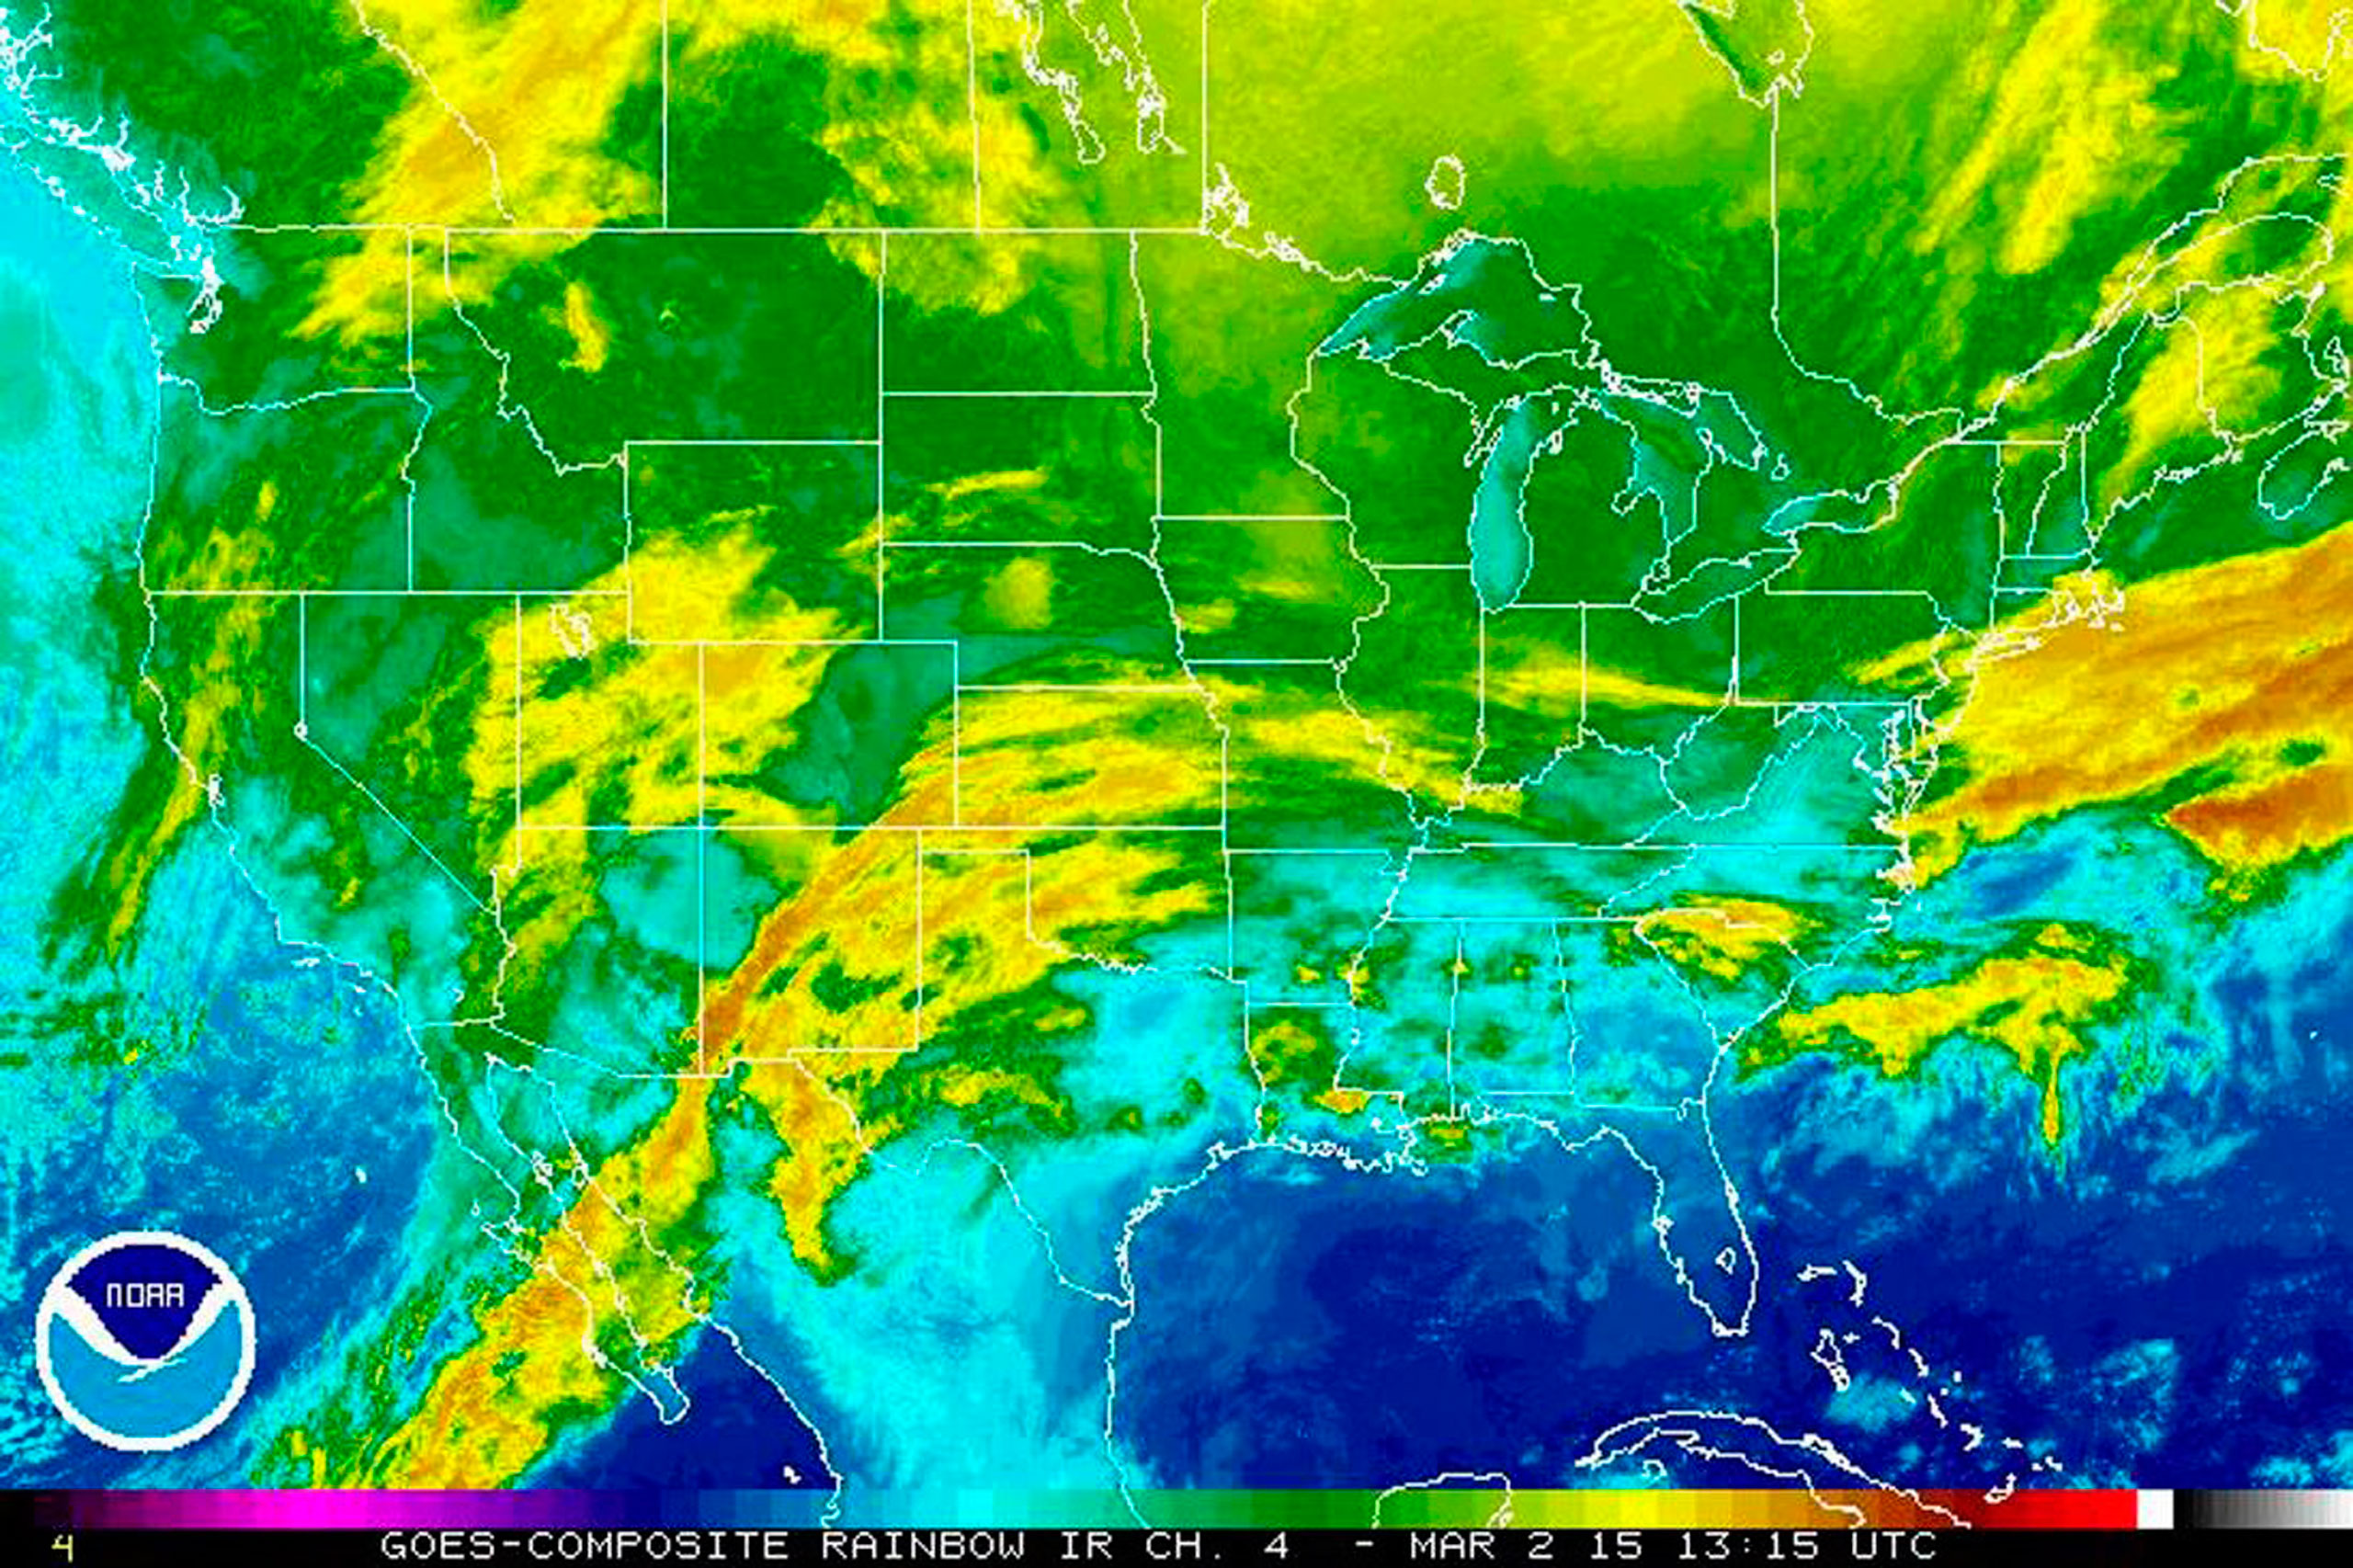 An infrared view of U.S. shows a storm poised to hit northern states across the nation with more snow and ice on March 2, 2015.